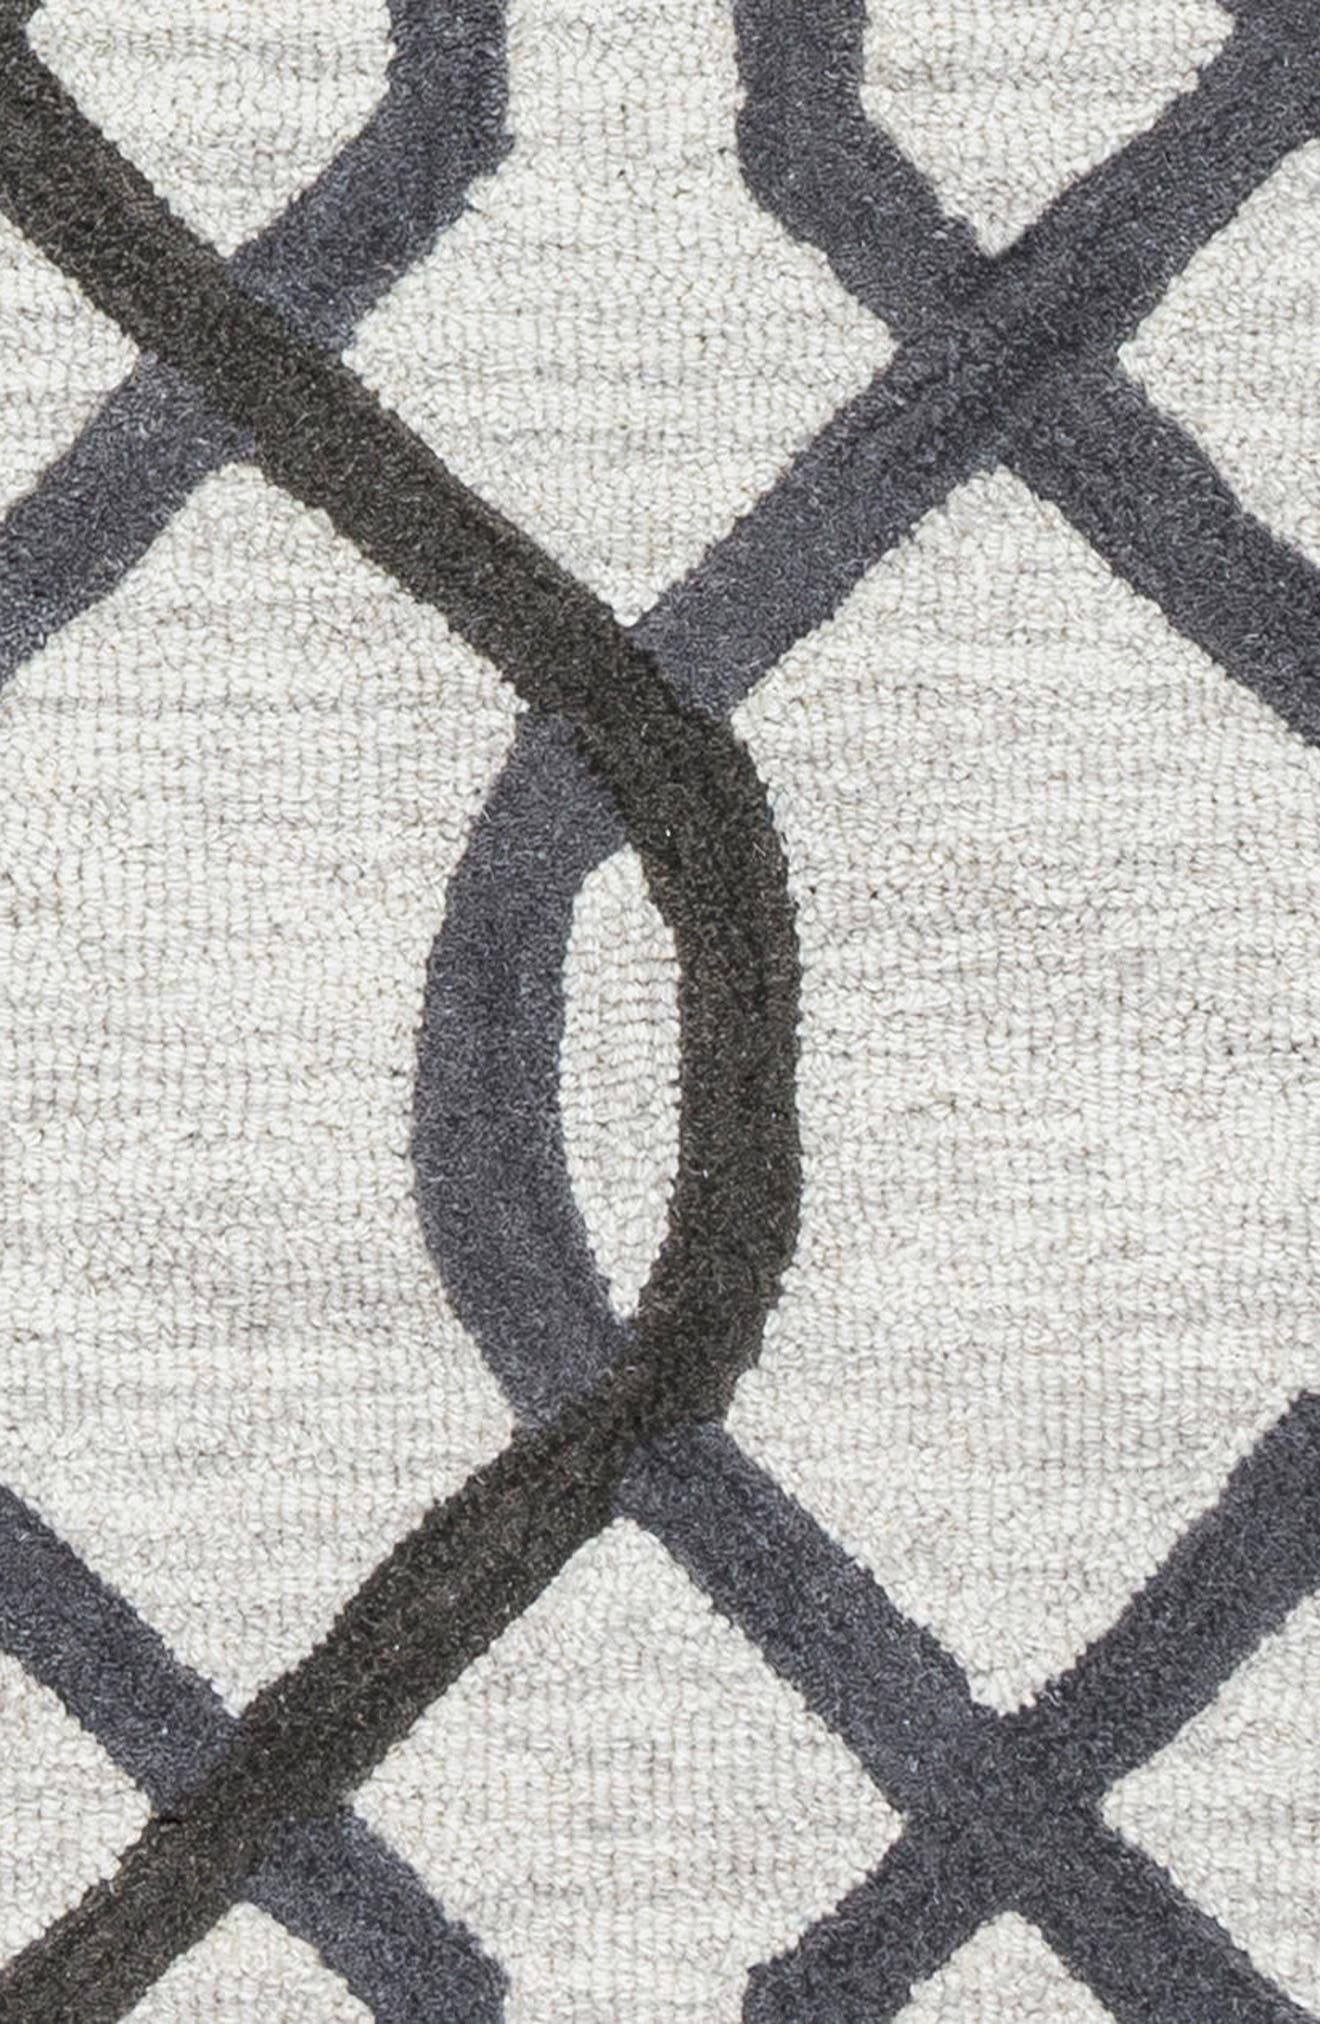 'Caterine Lines' Hand Tufted Wool Area Rug,                             Alternate thumbnail 5, color,                             020